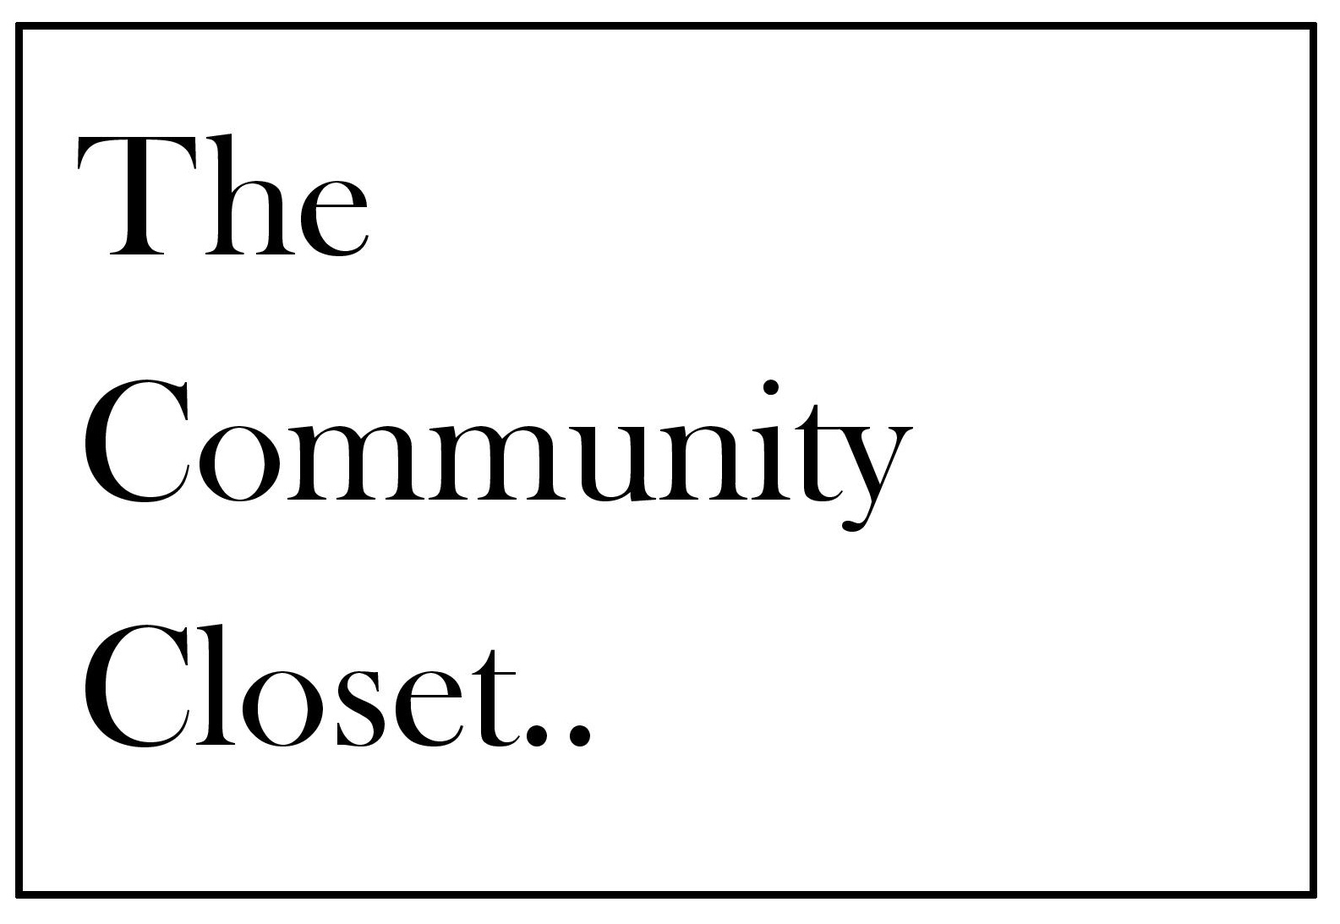 The Community Closet